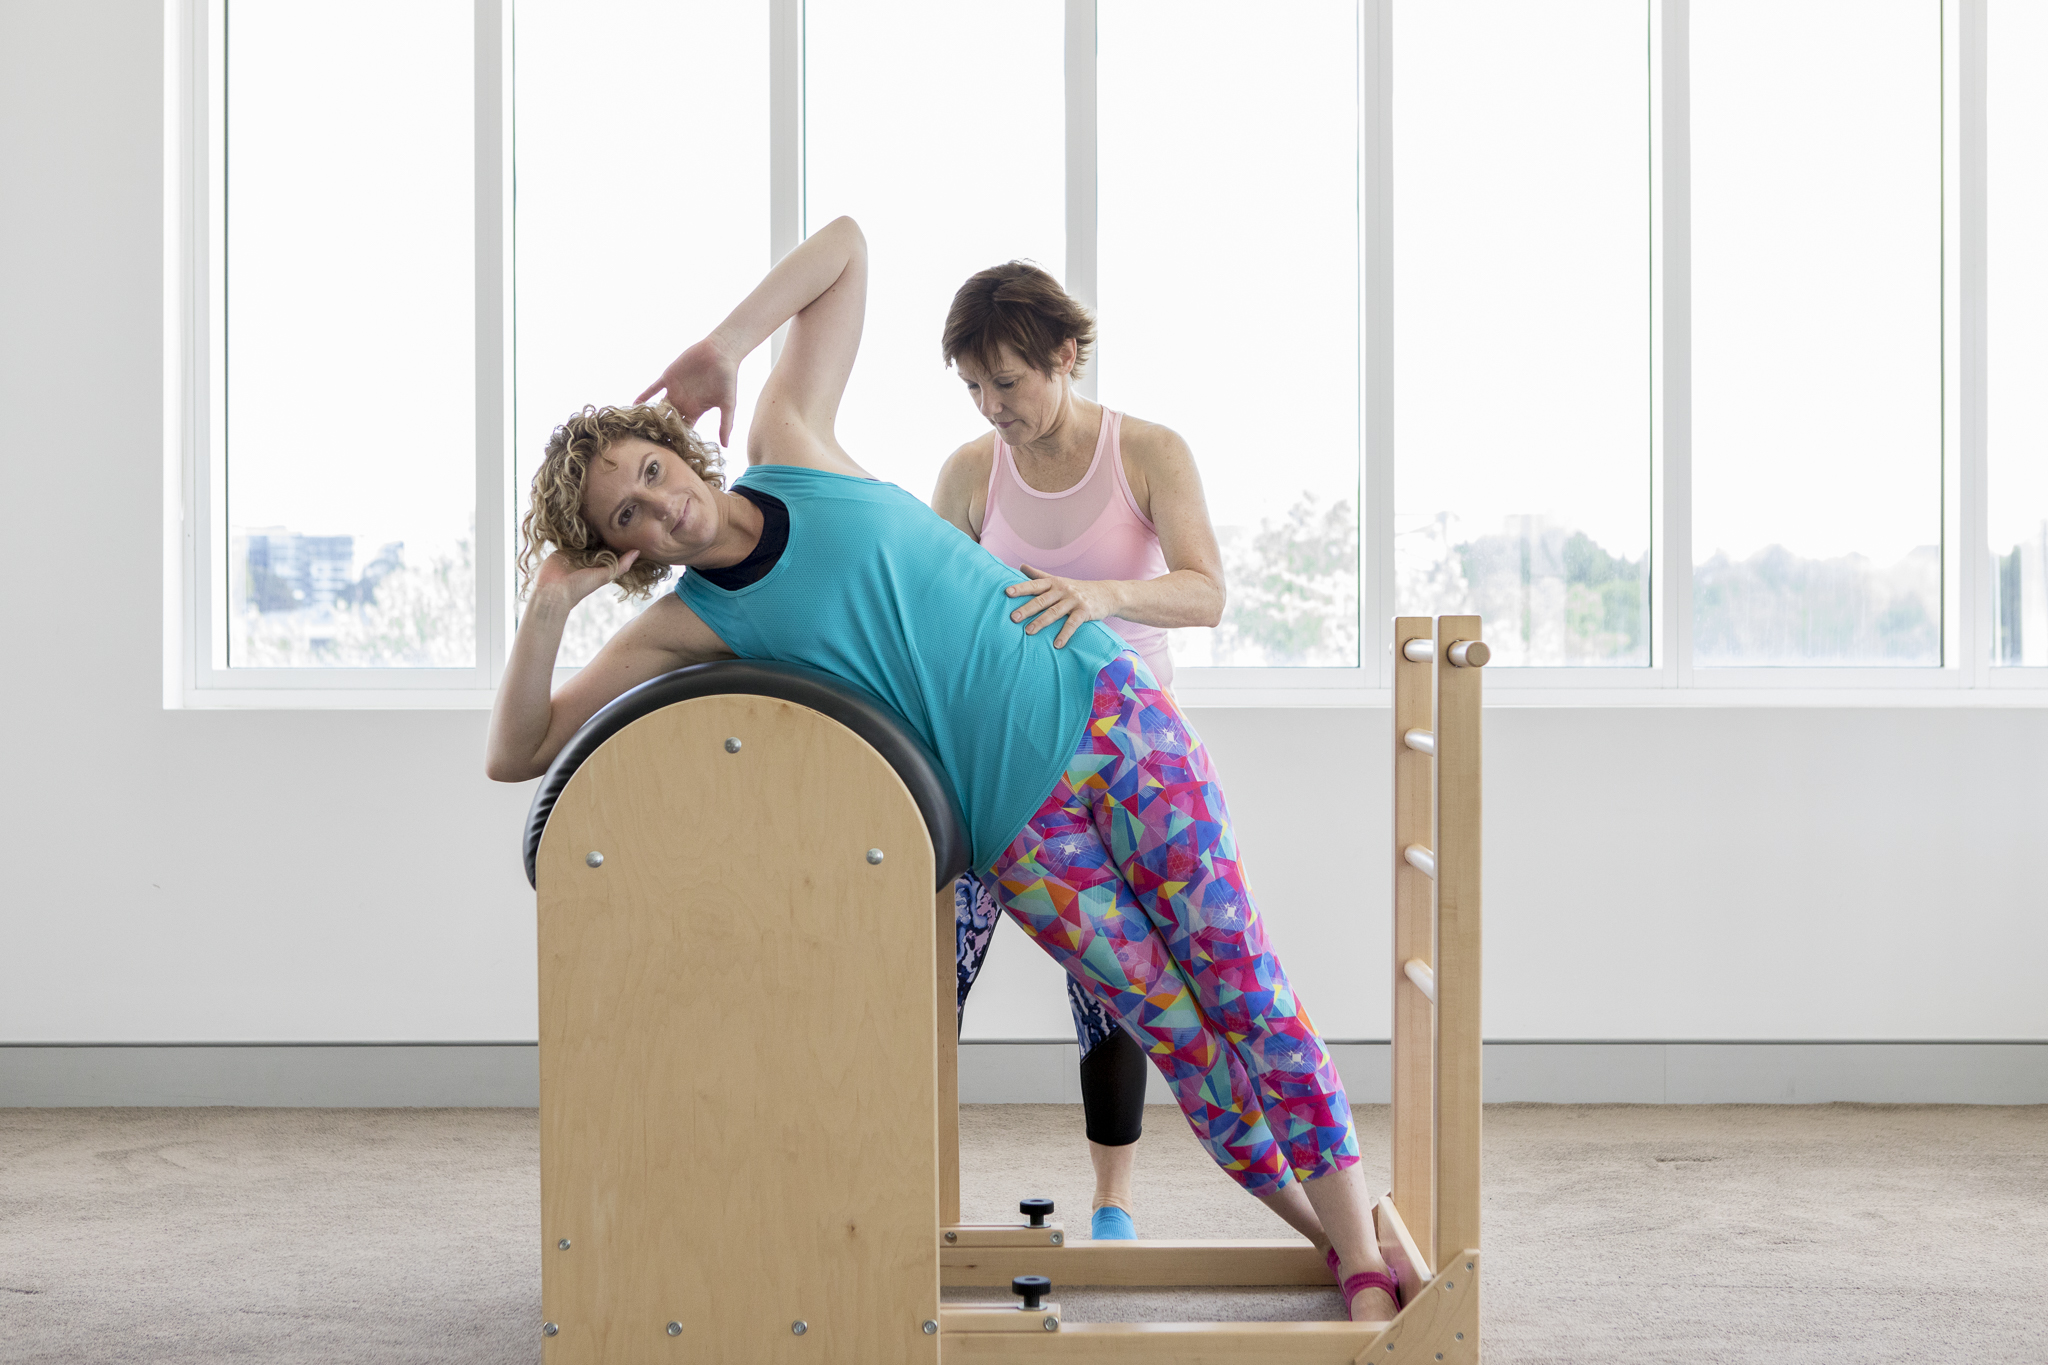 private equipment pilates